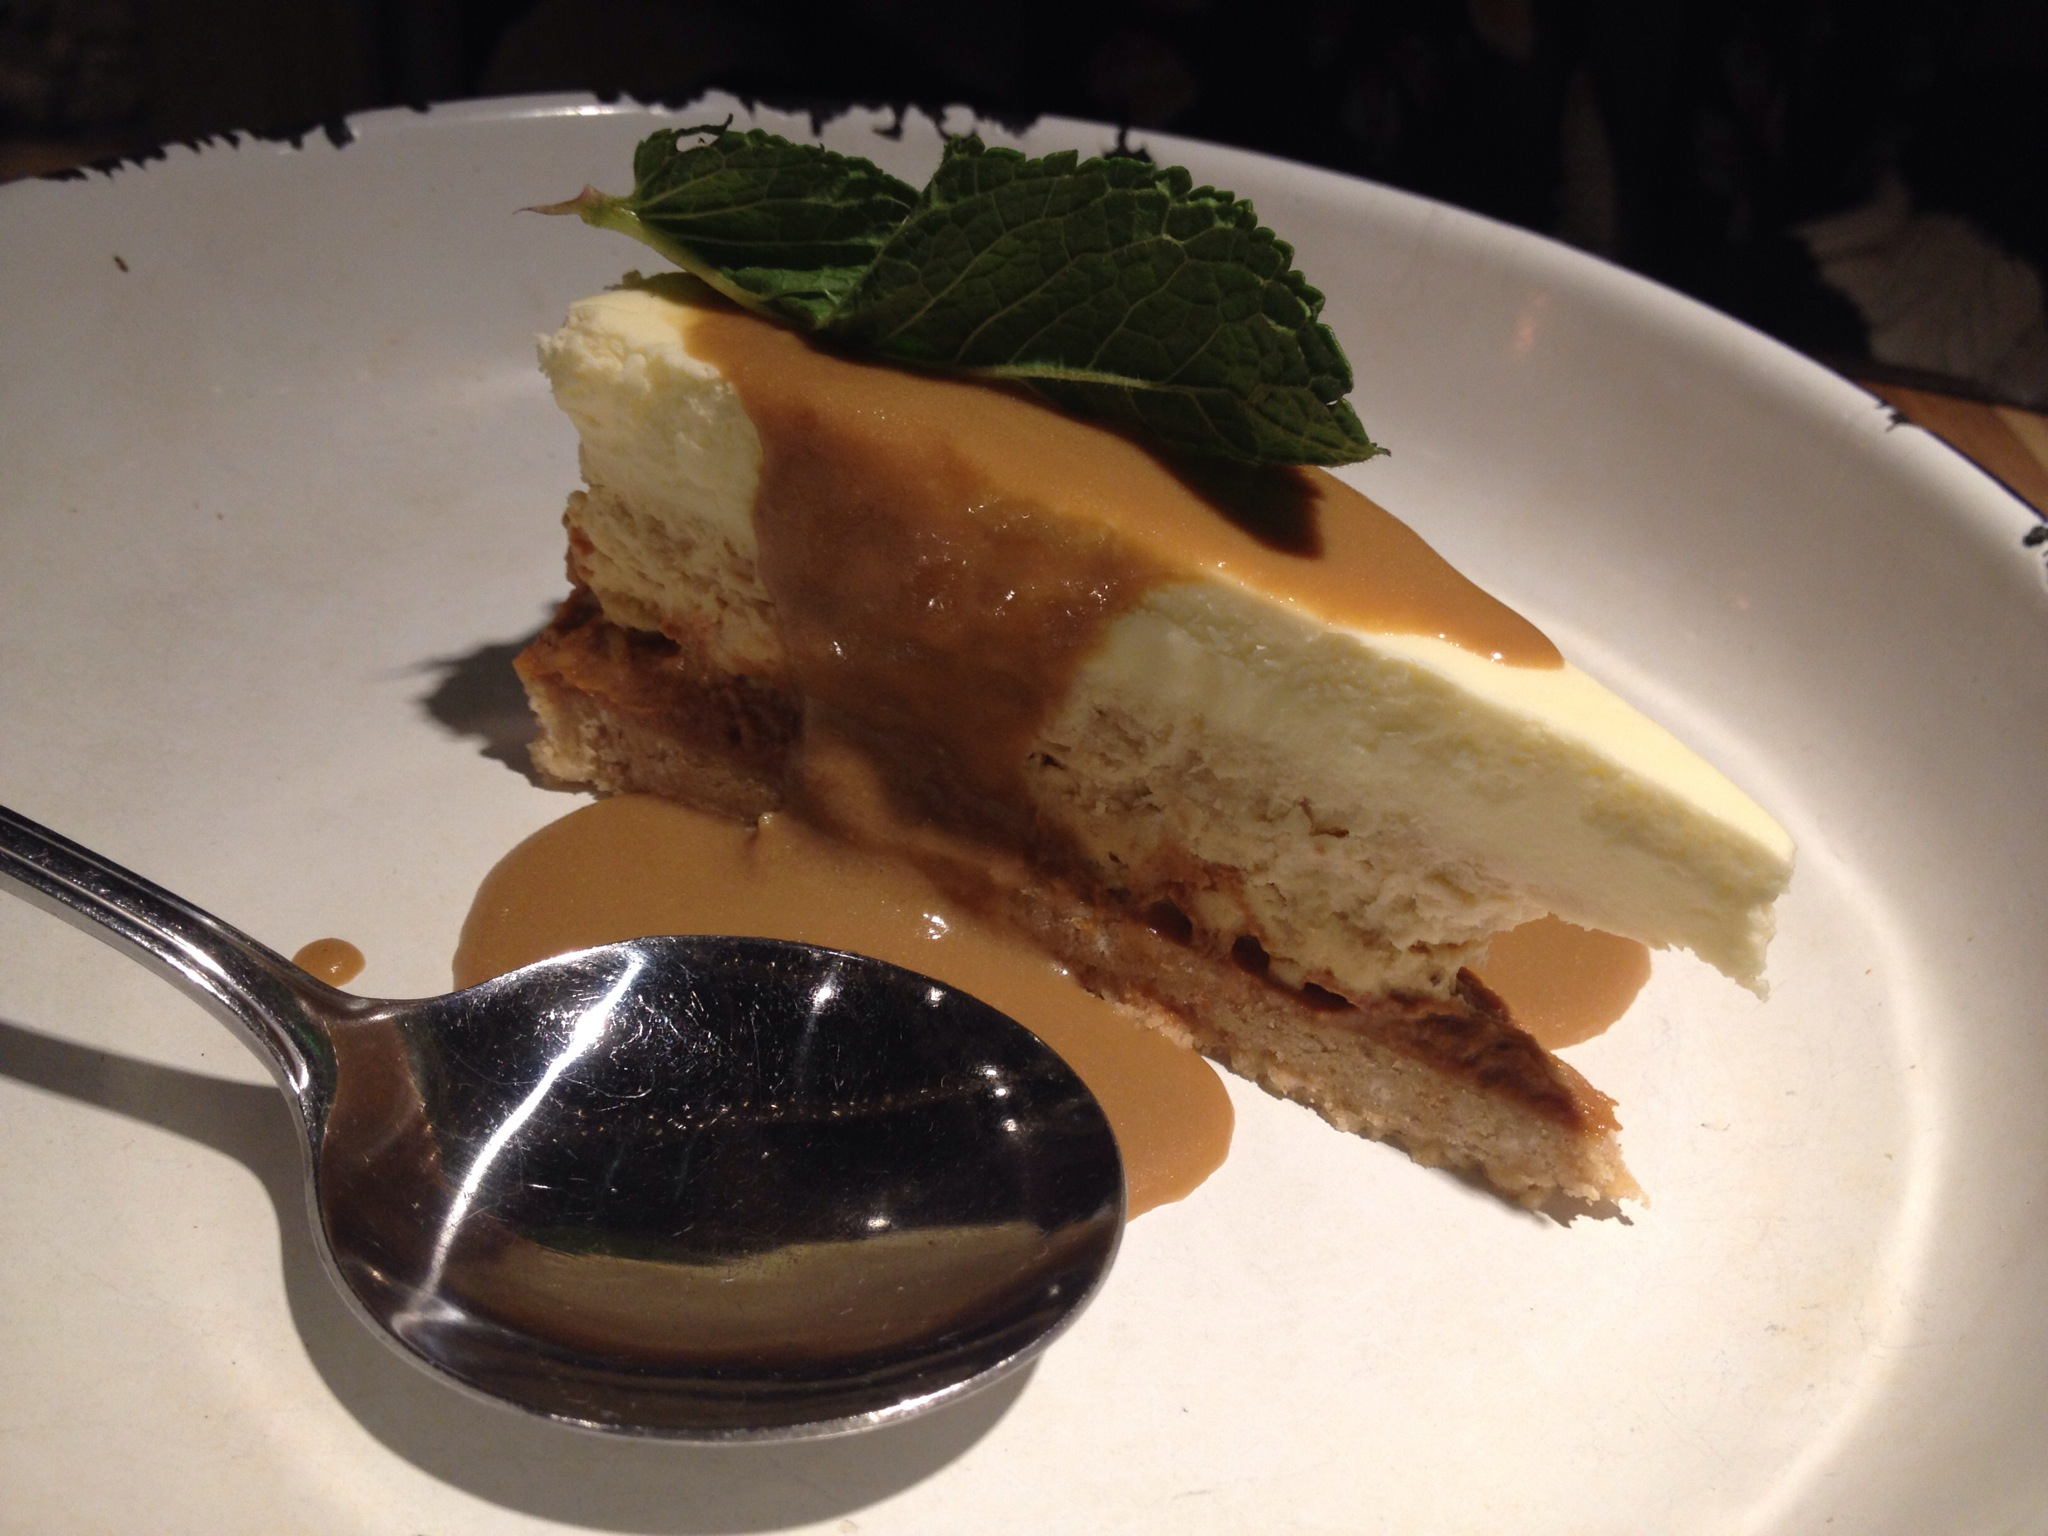 Turtle Bay - Banana & Toffee Cheesecake